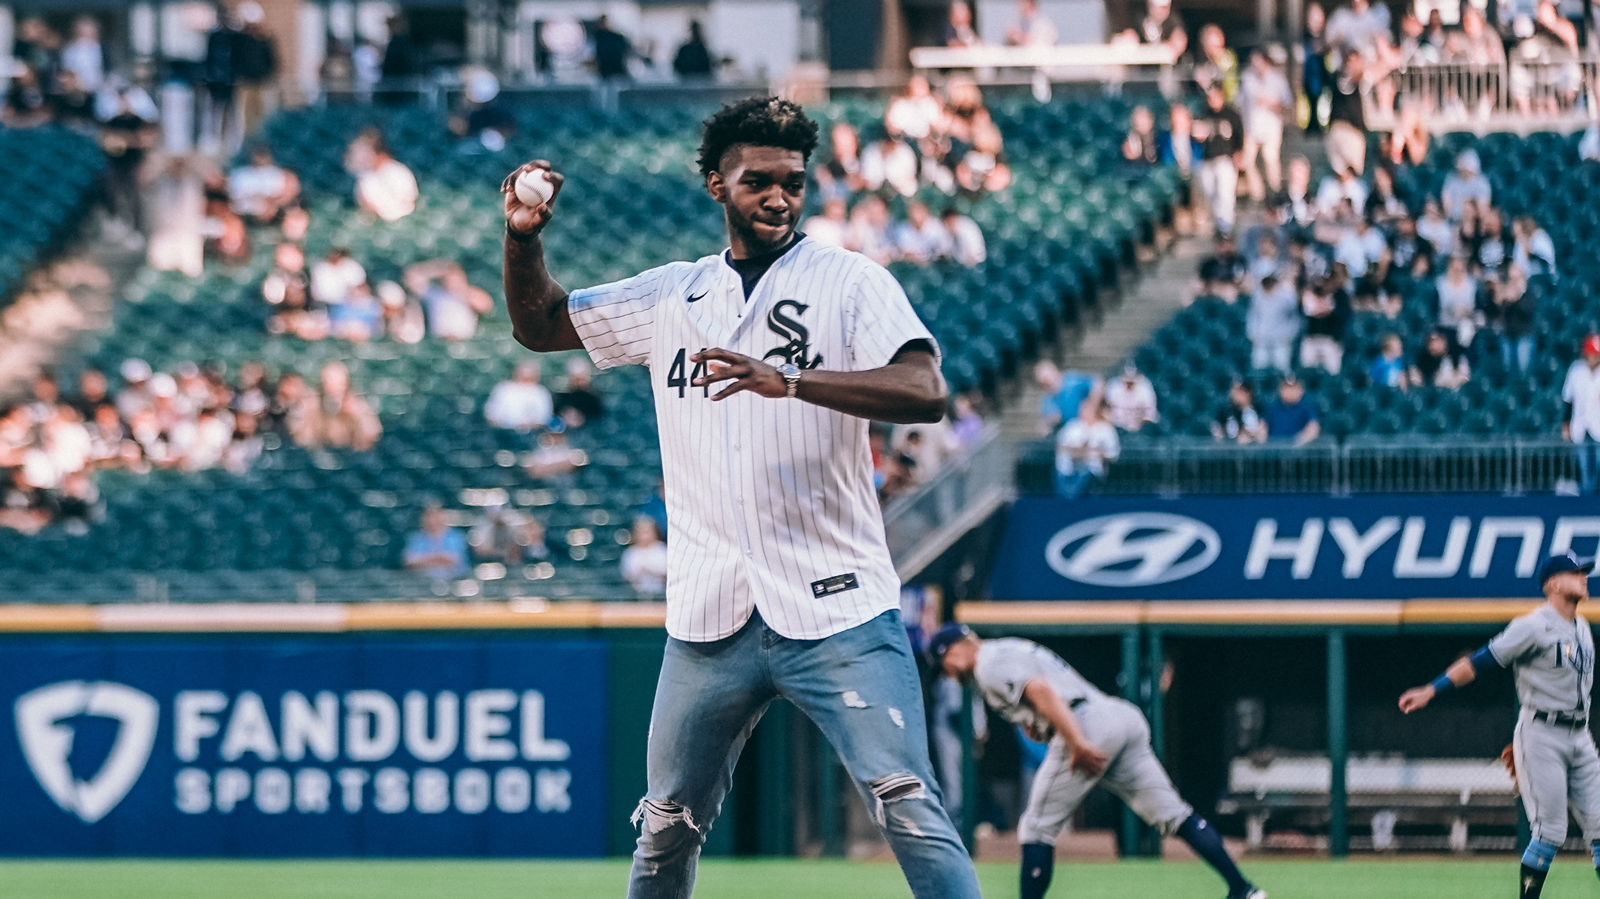 Patrick Williams | Sox First Pitch